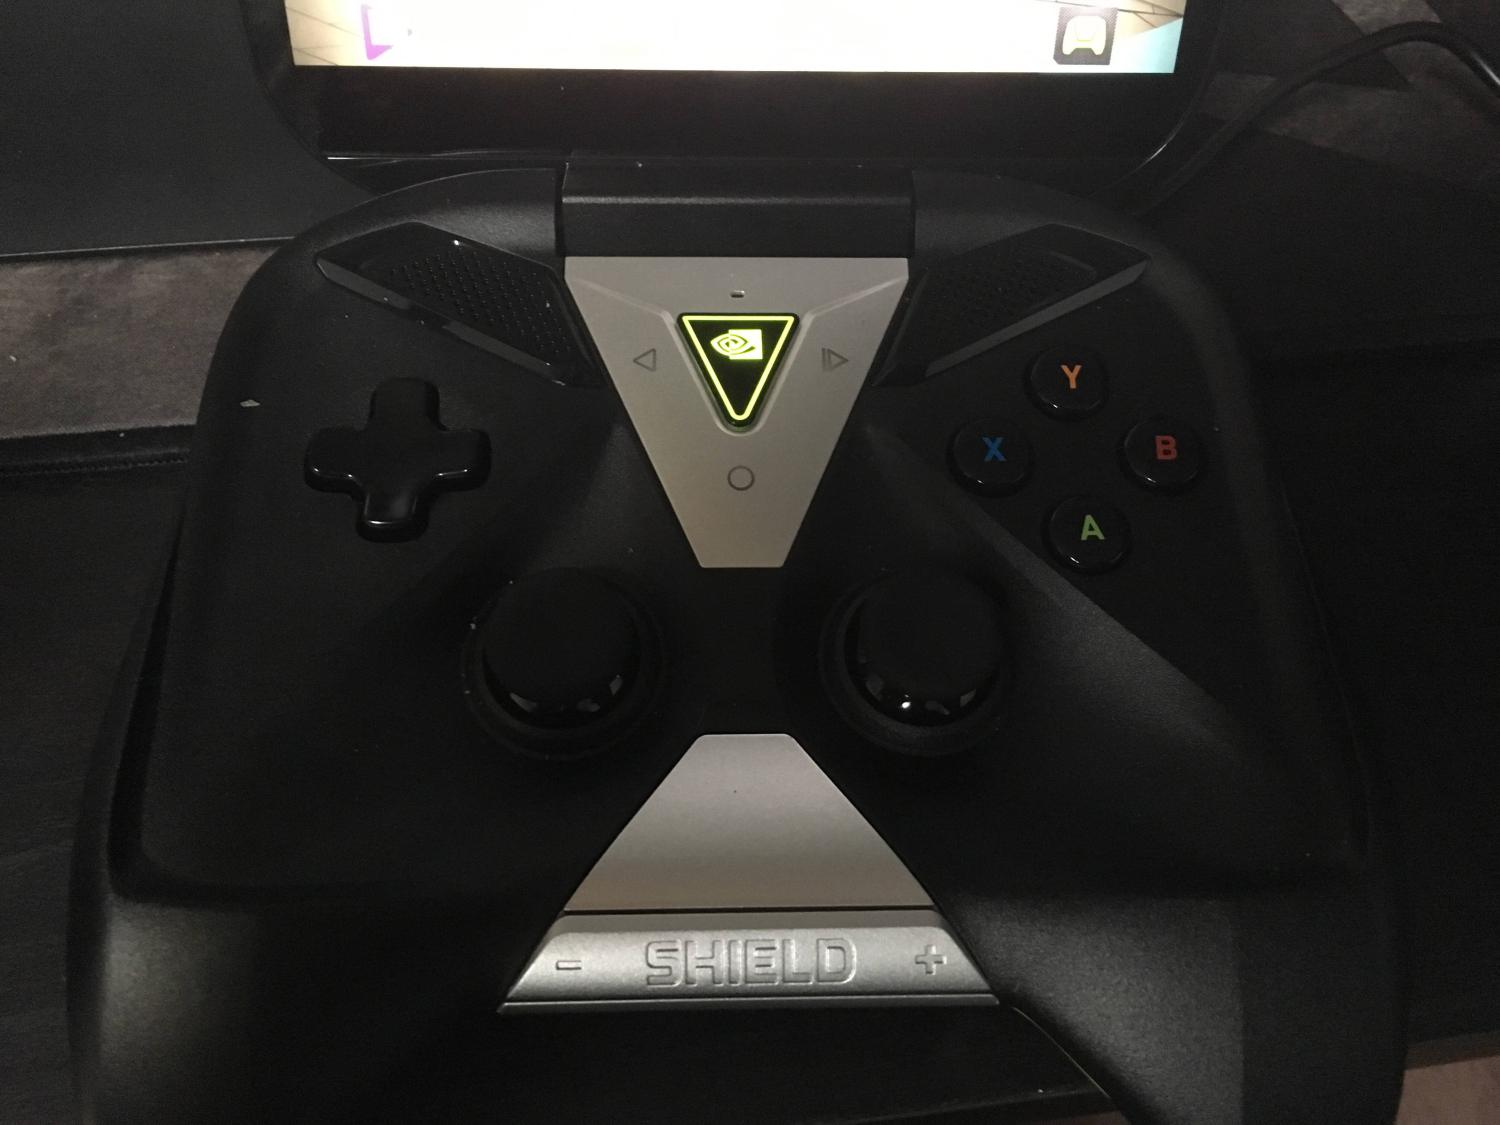 Nvidia Shield Portable 2 pad